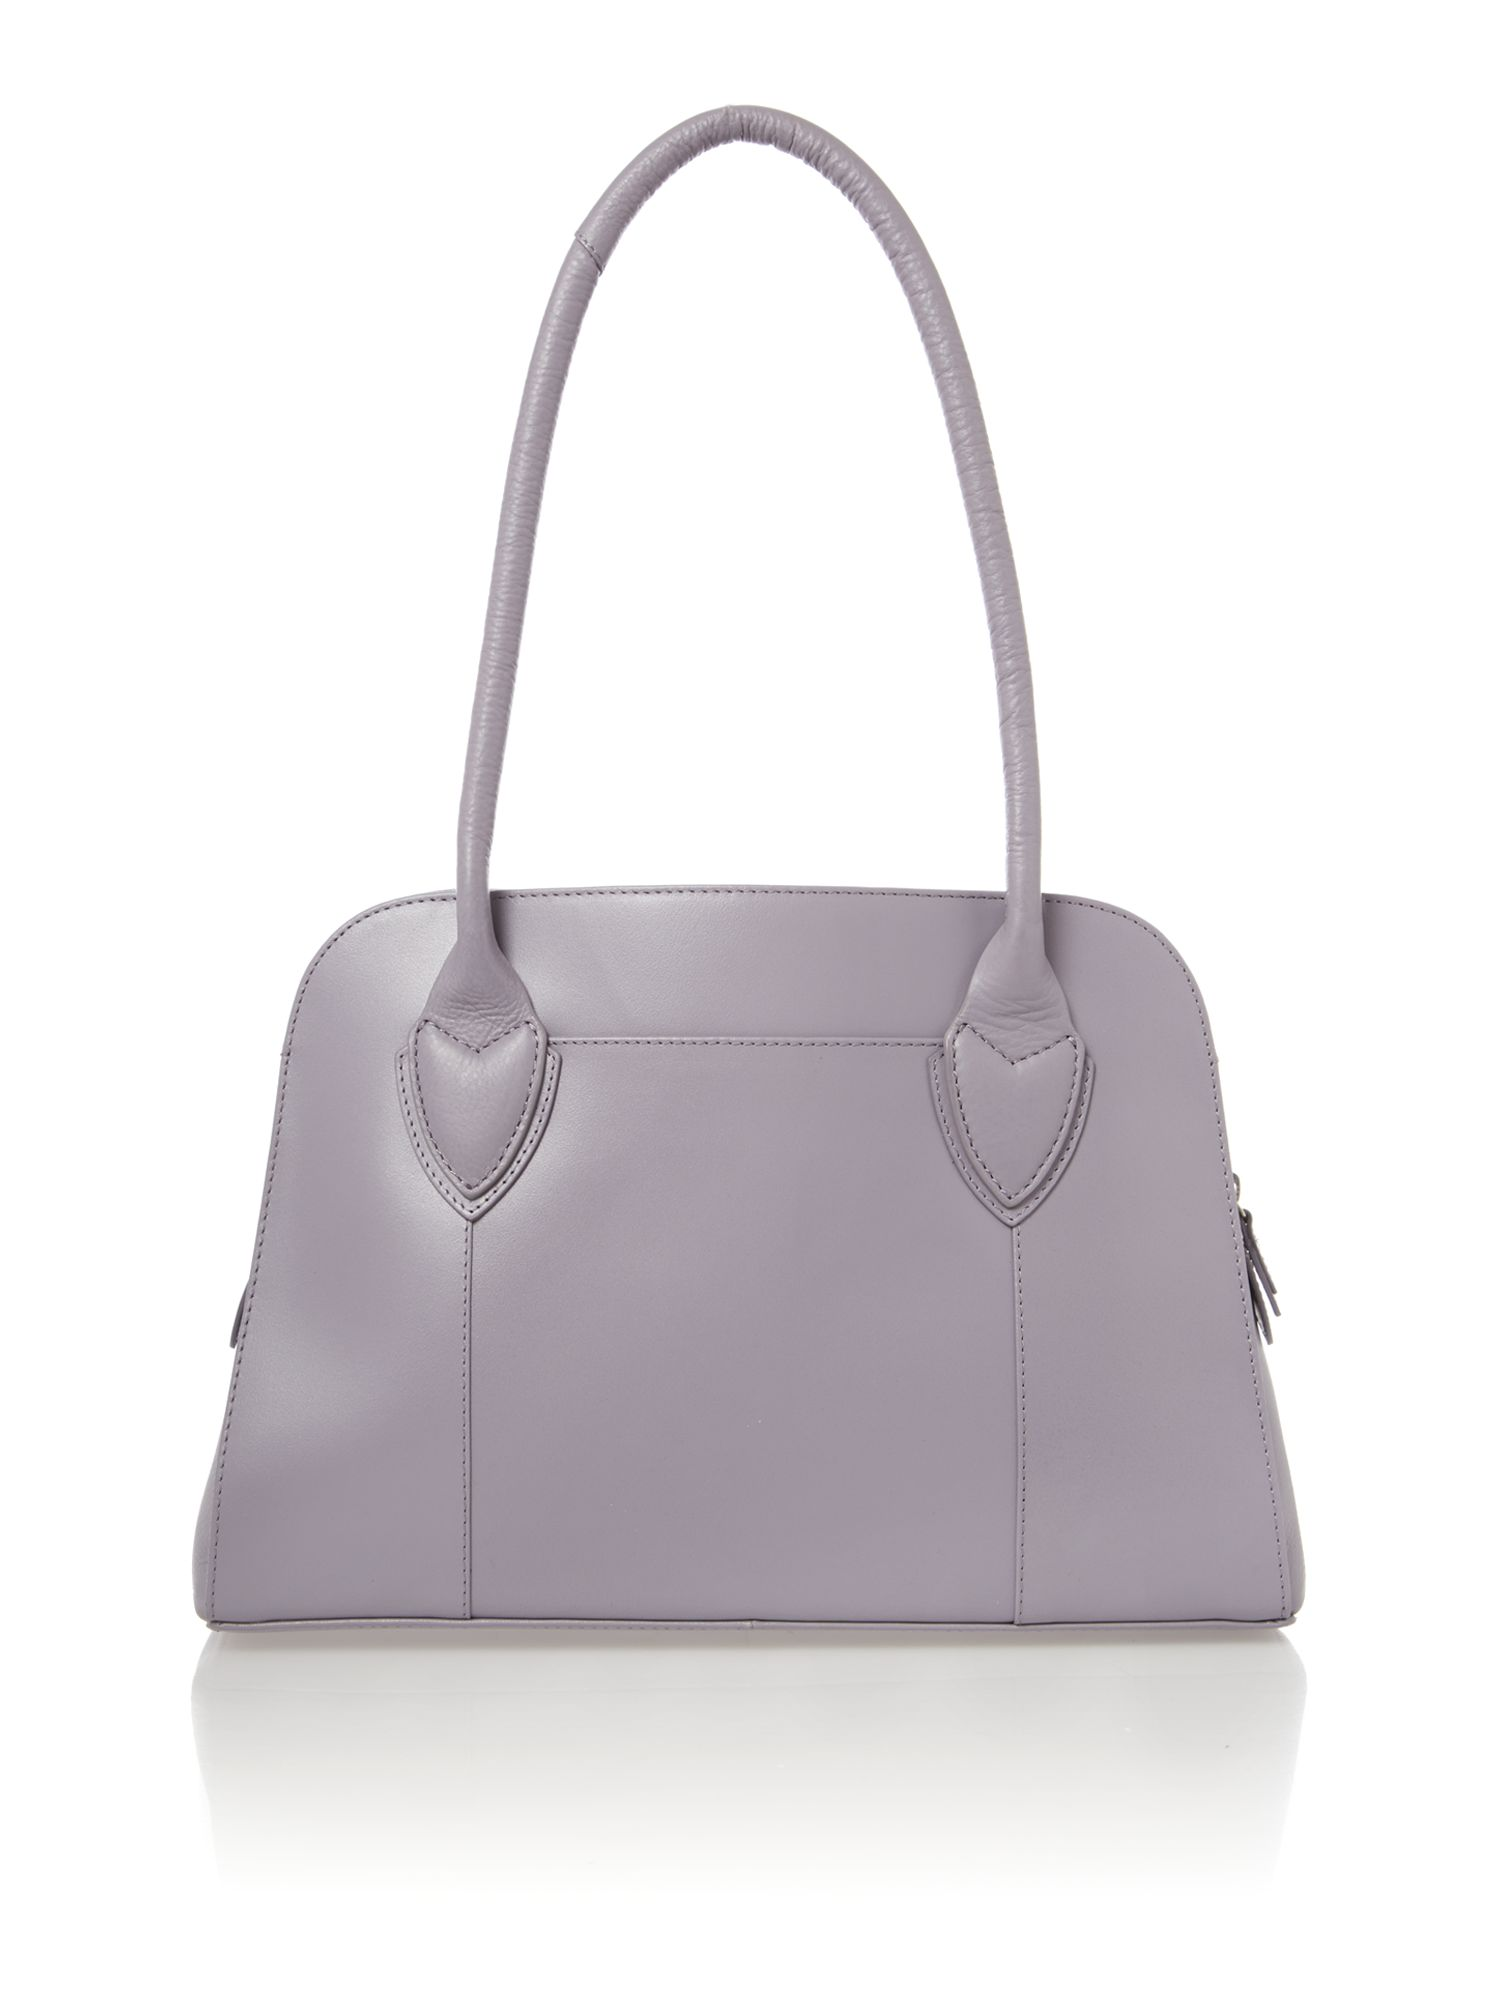 Aldgate purple medium tote